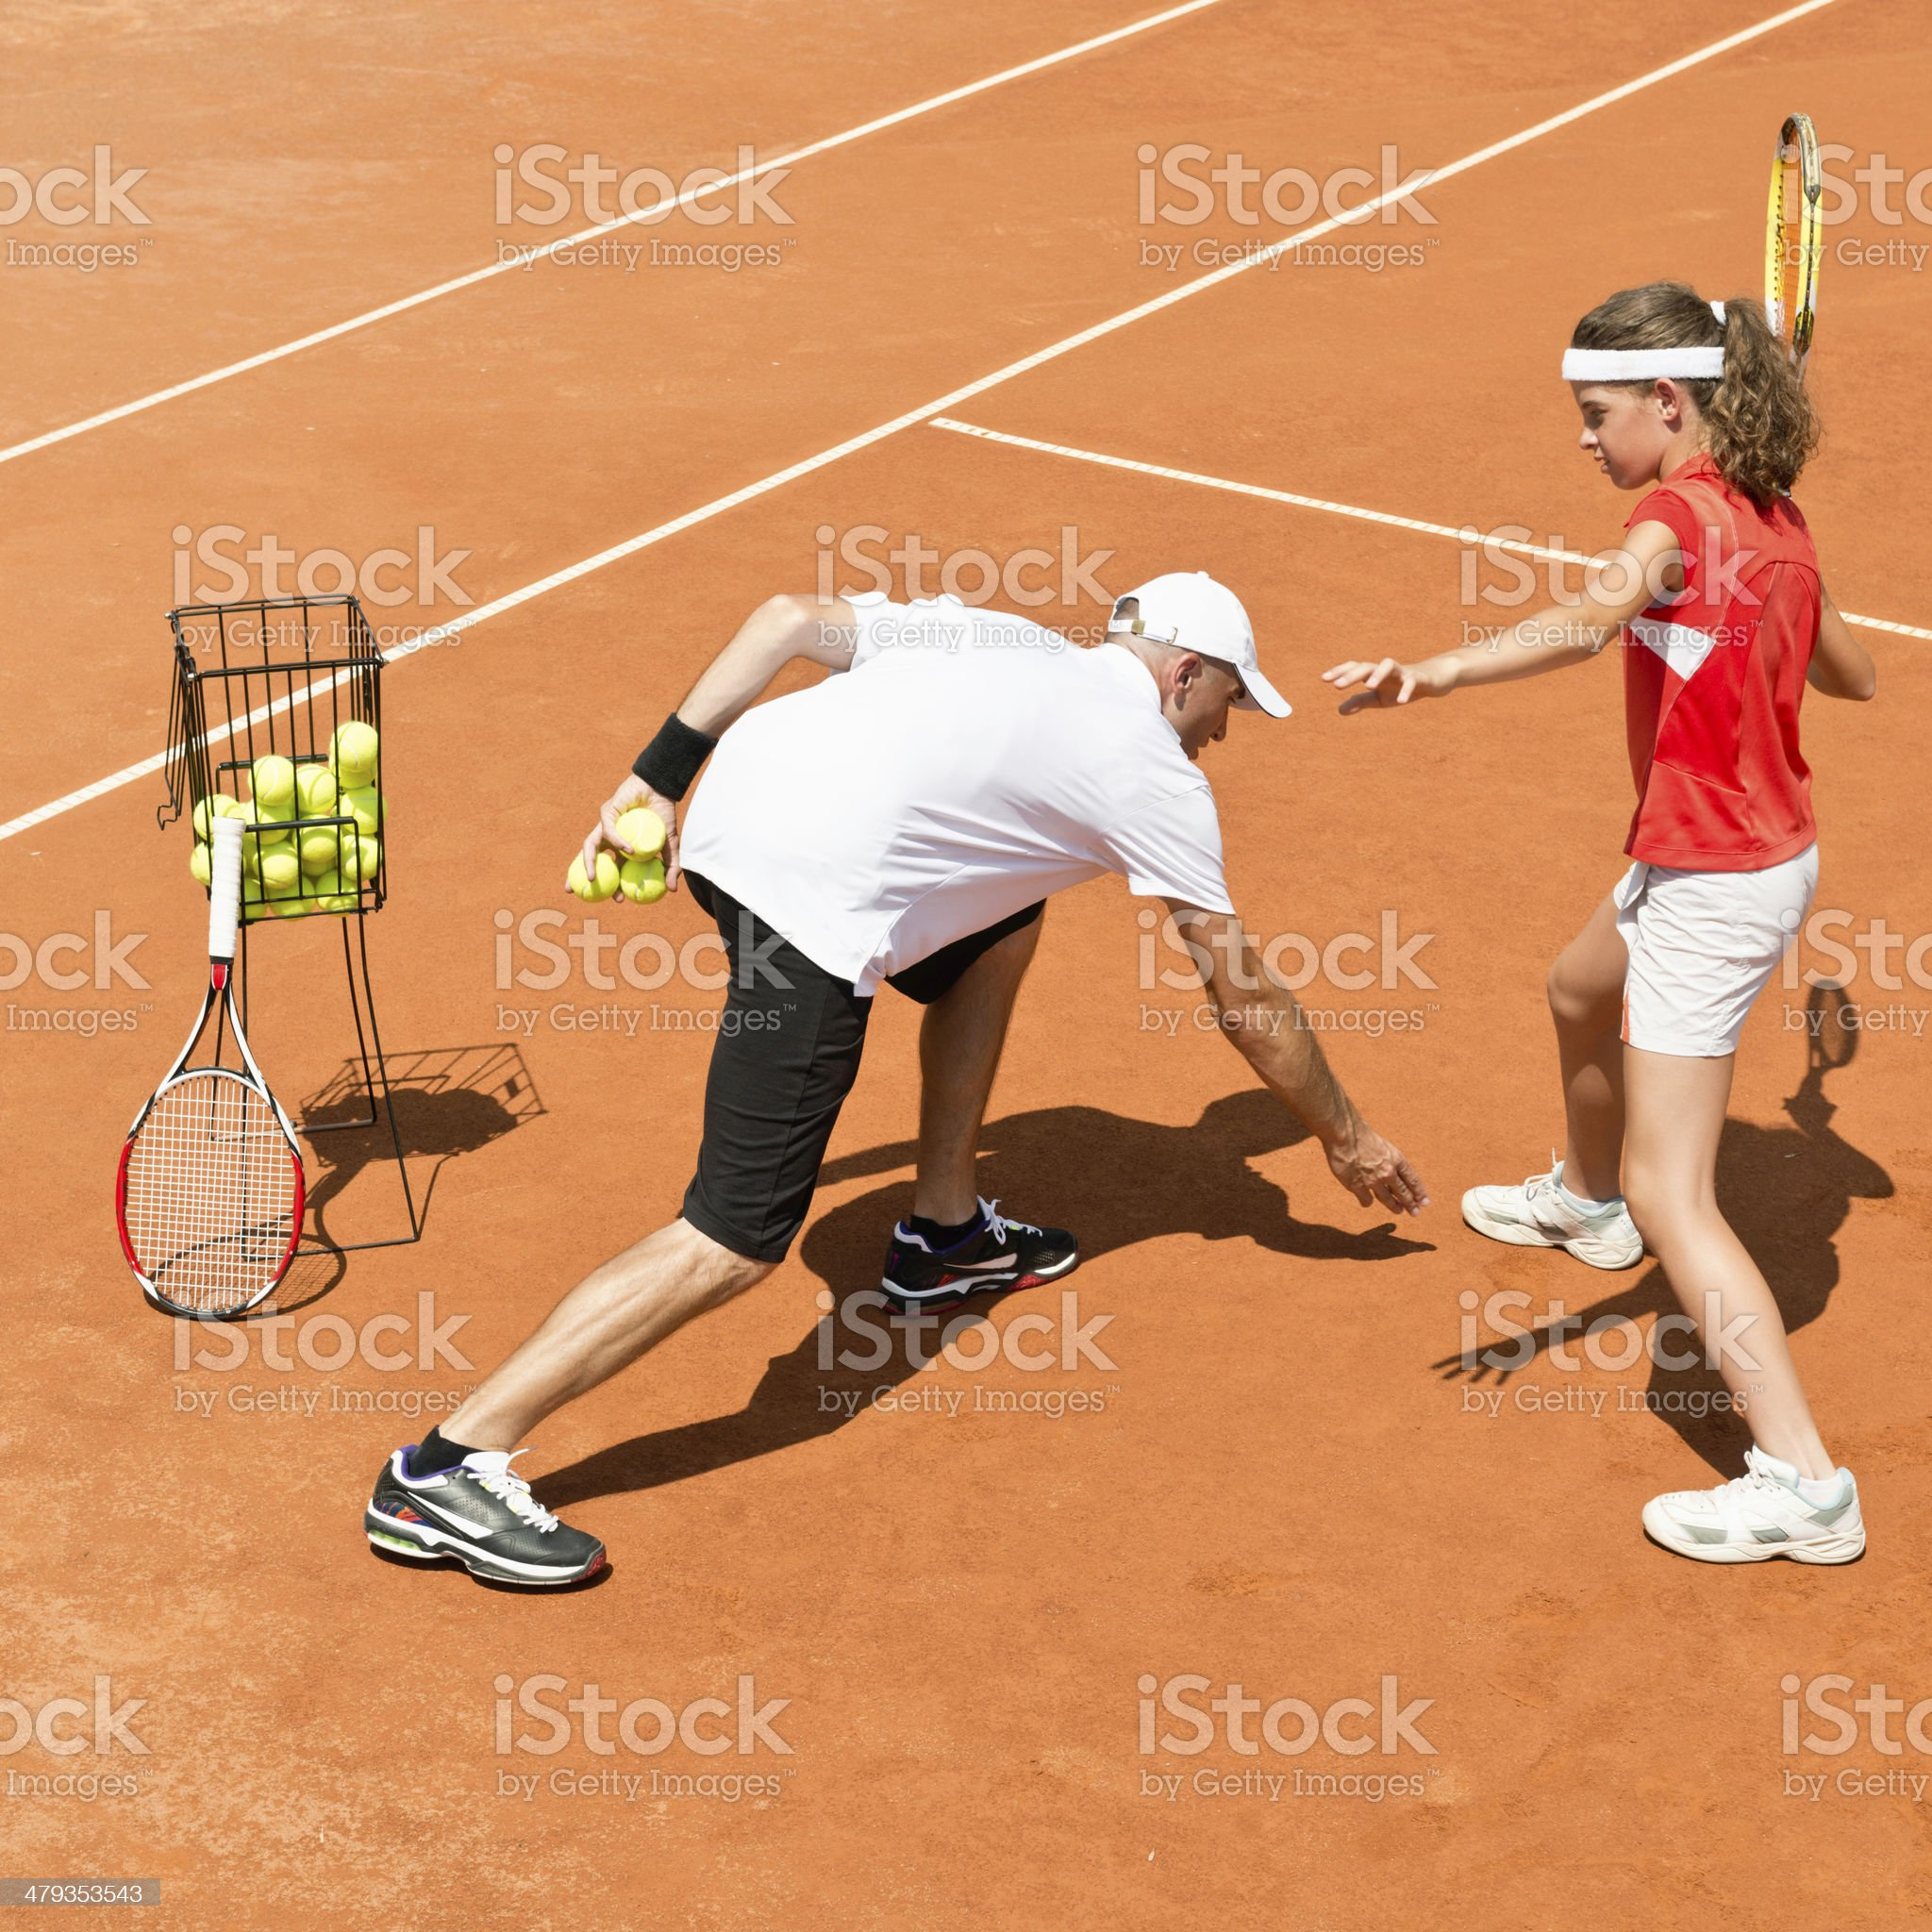 Tennis instructor working with girl royalty-free stock photo